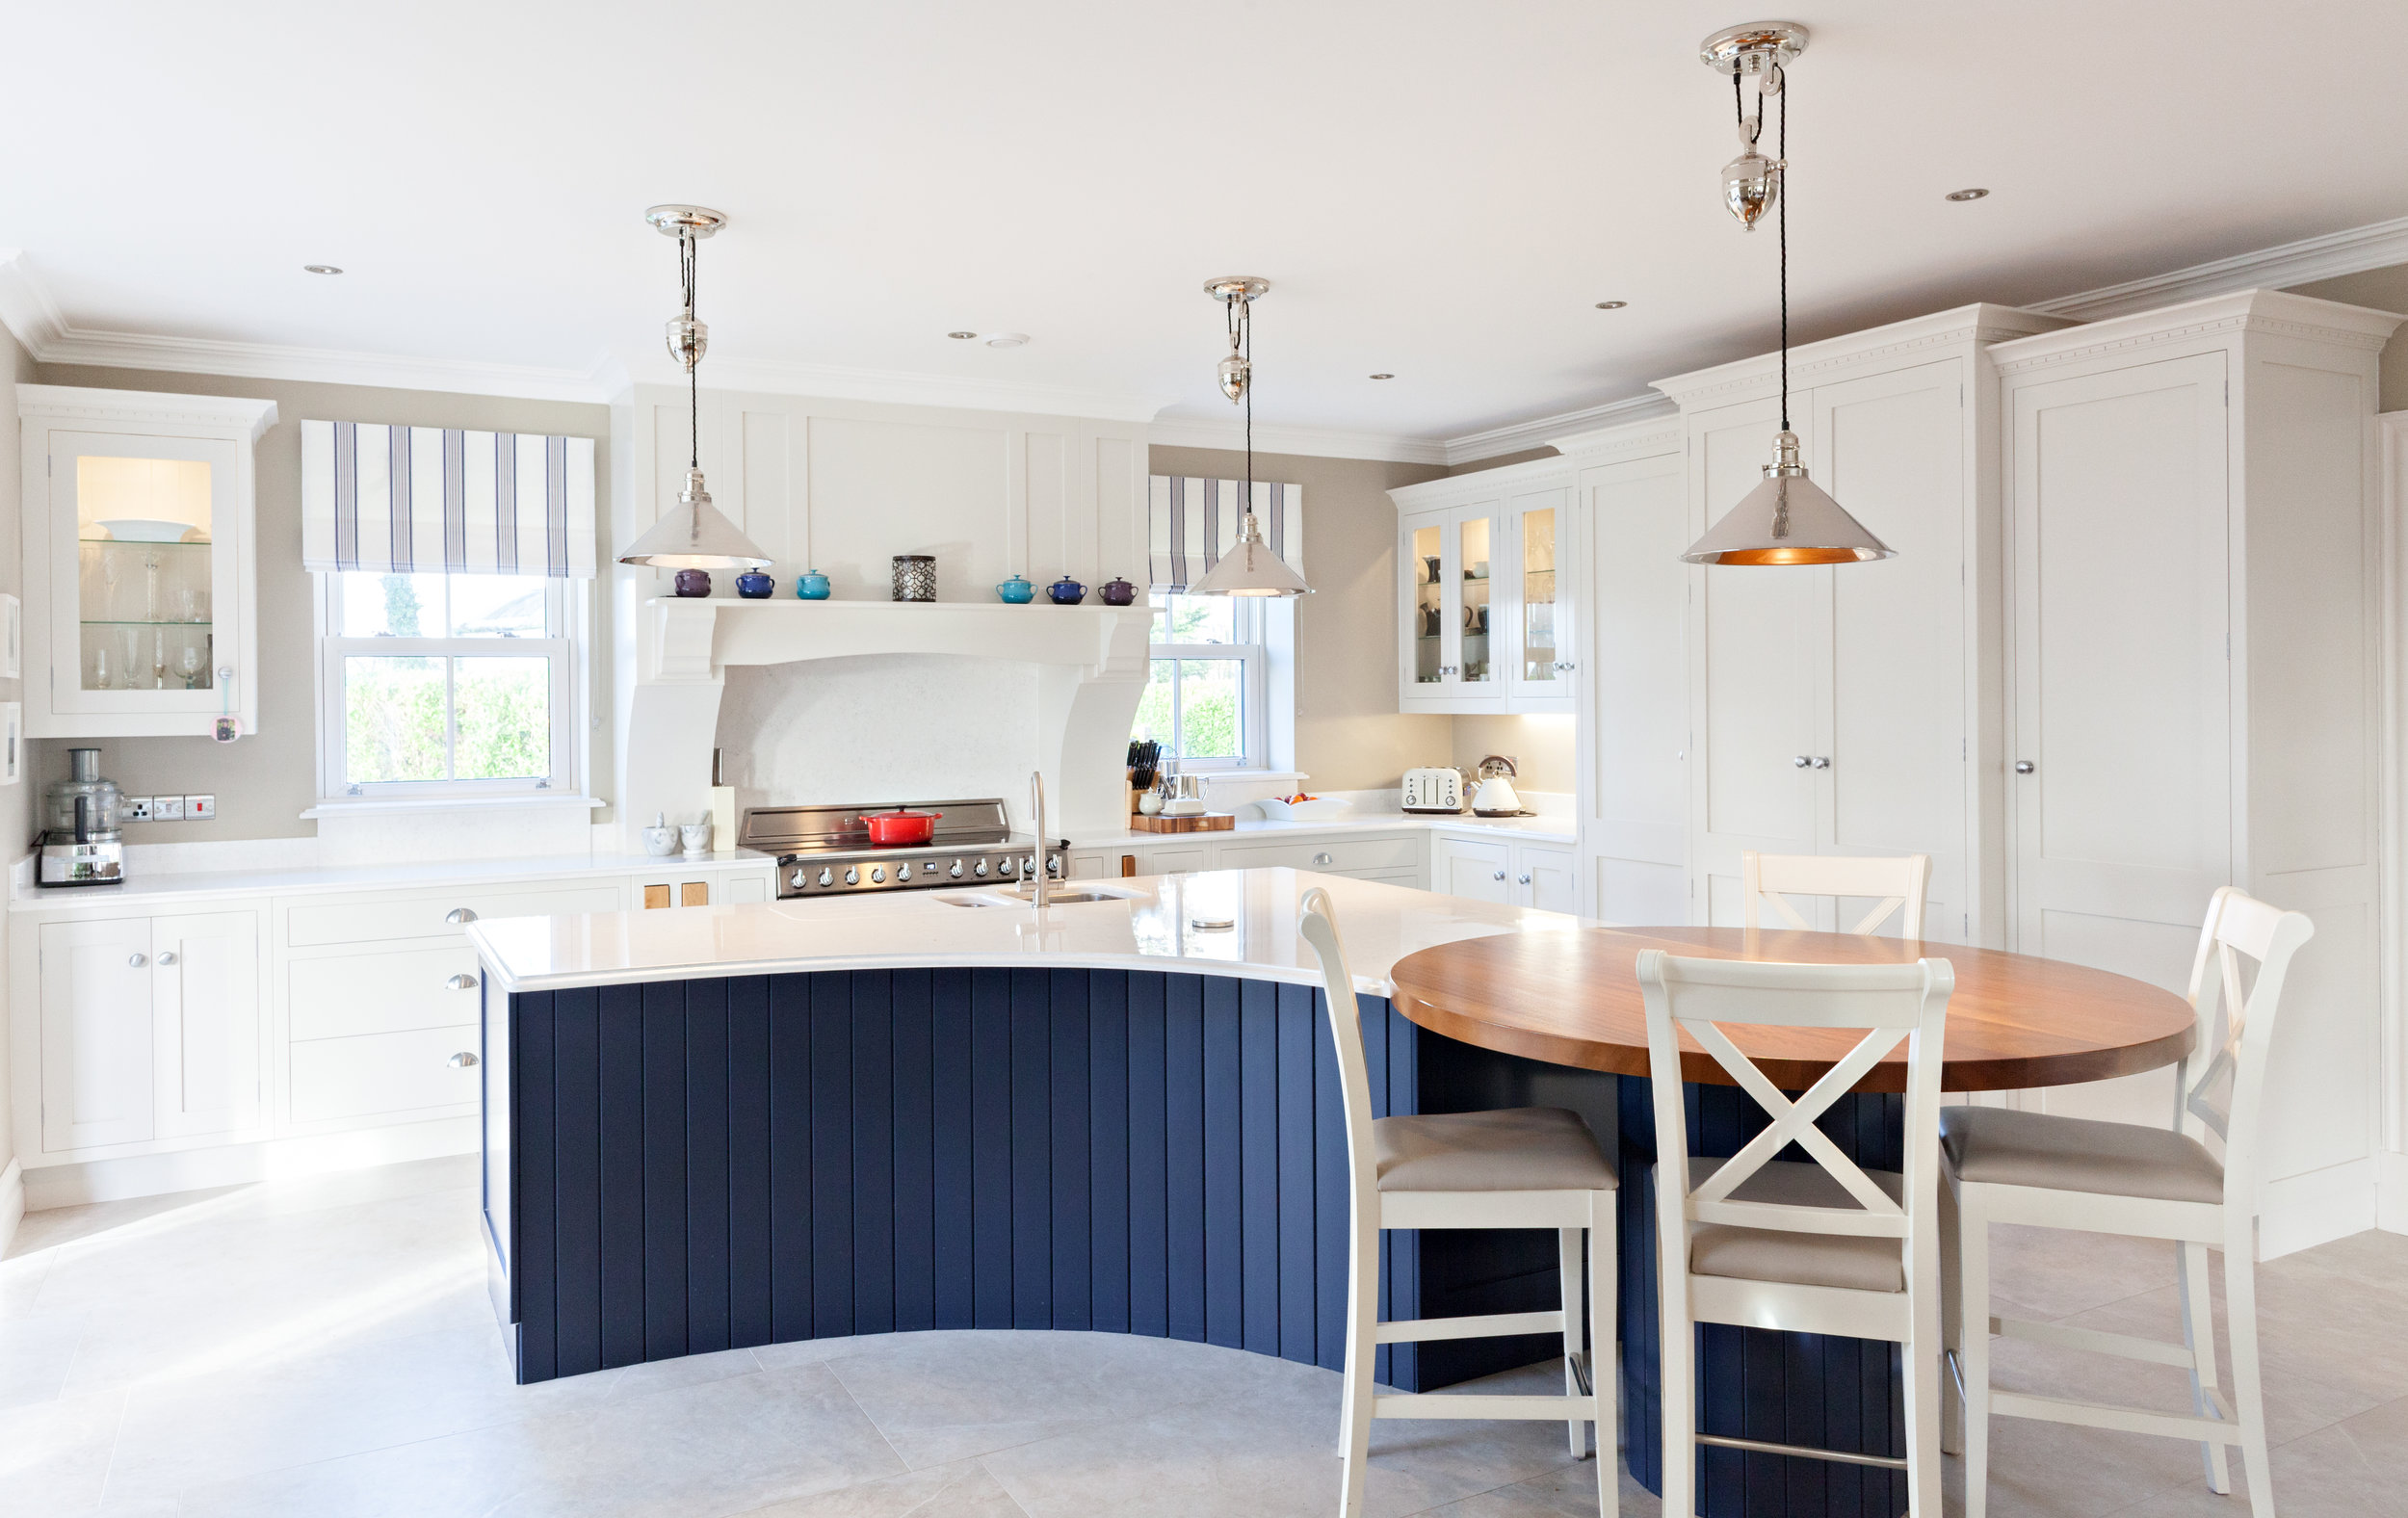 LeeReeve-Kitchen-Painter-Cork-Ireland-Munster-FinishedLuxuryKitchen.jpg